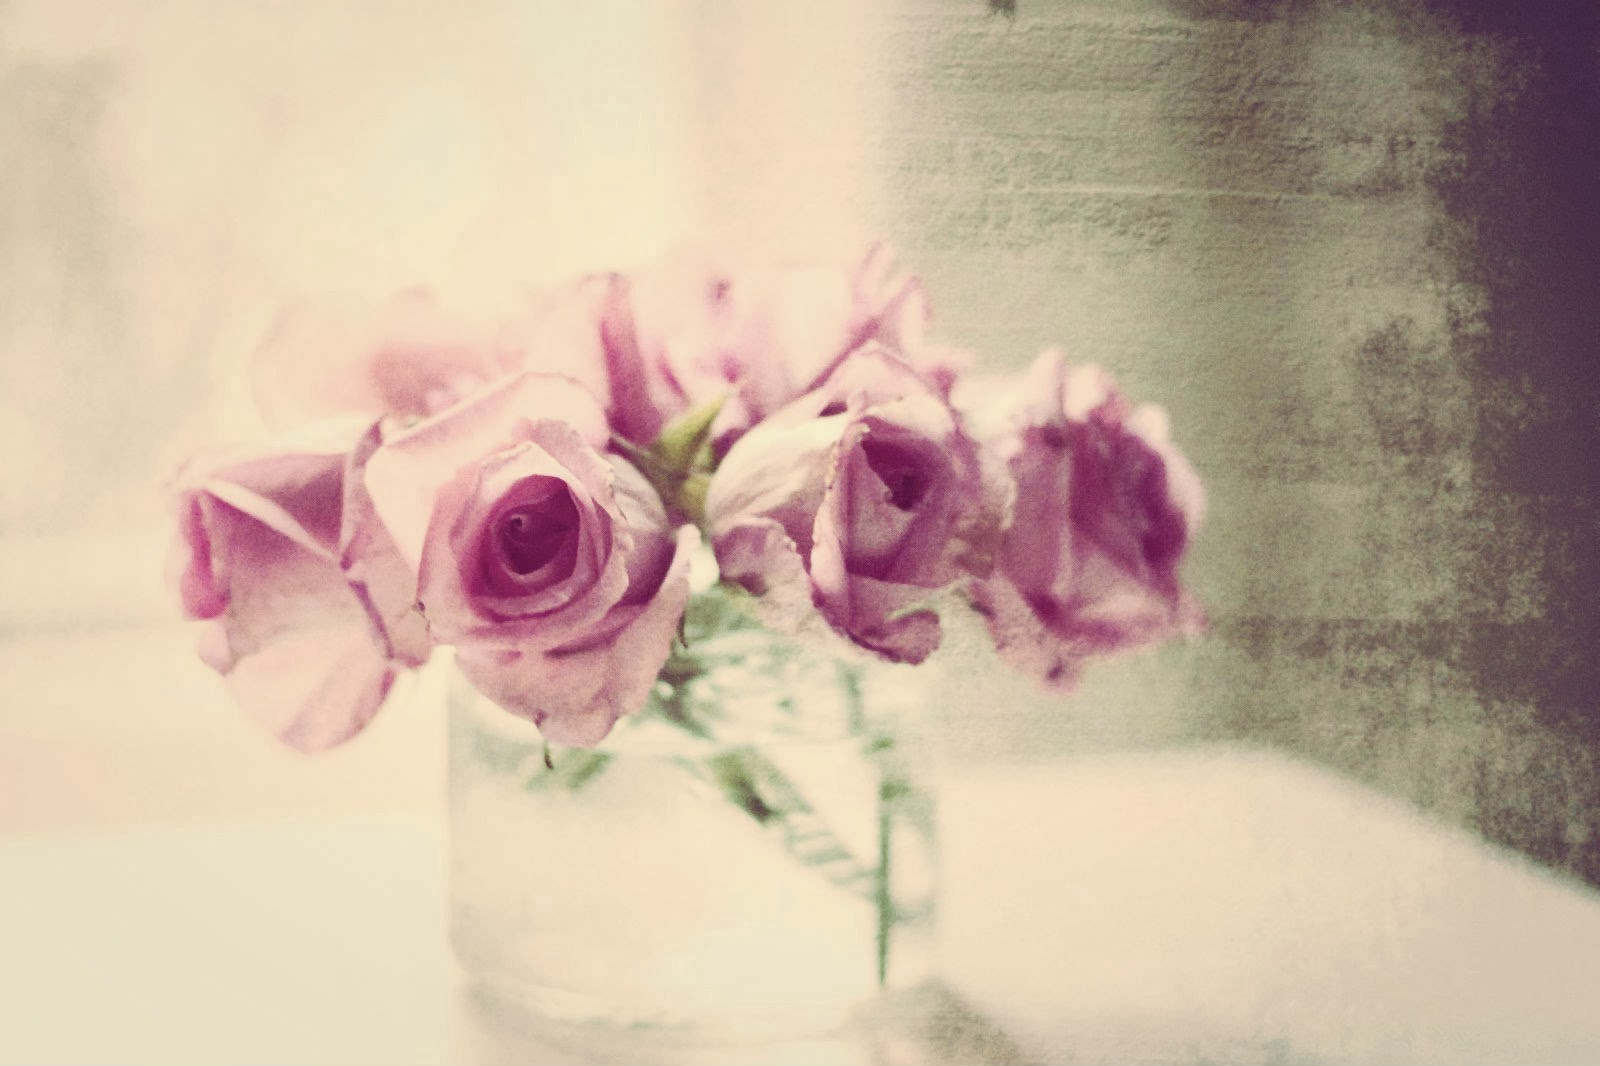 pink roses textured in a vase